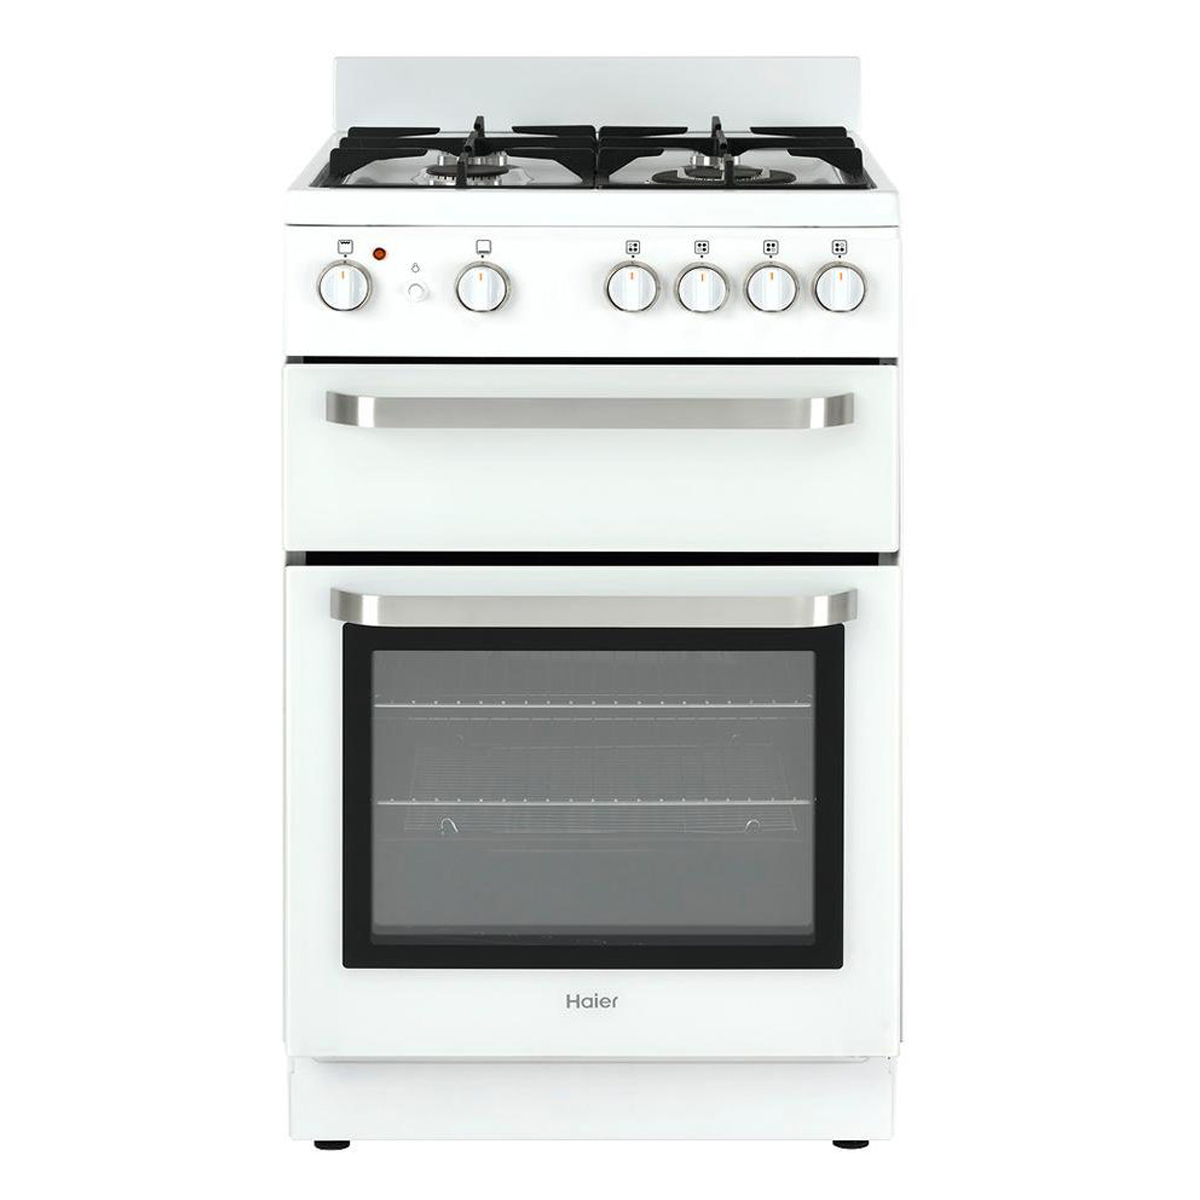 Haier HOR54B5MGW1 54cm Freestanding Natural Gas Oven/Stove 46915